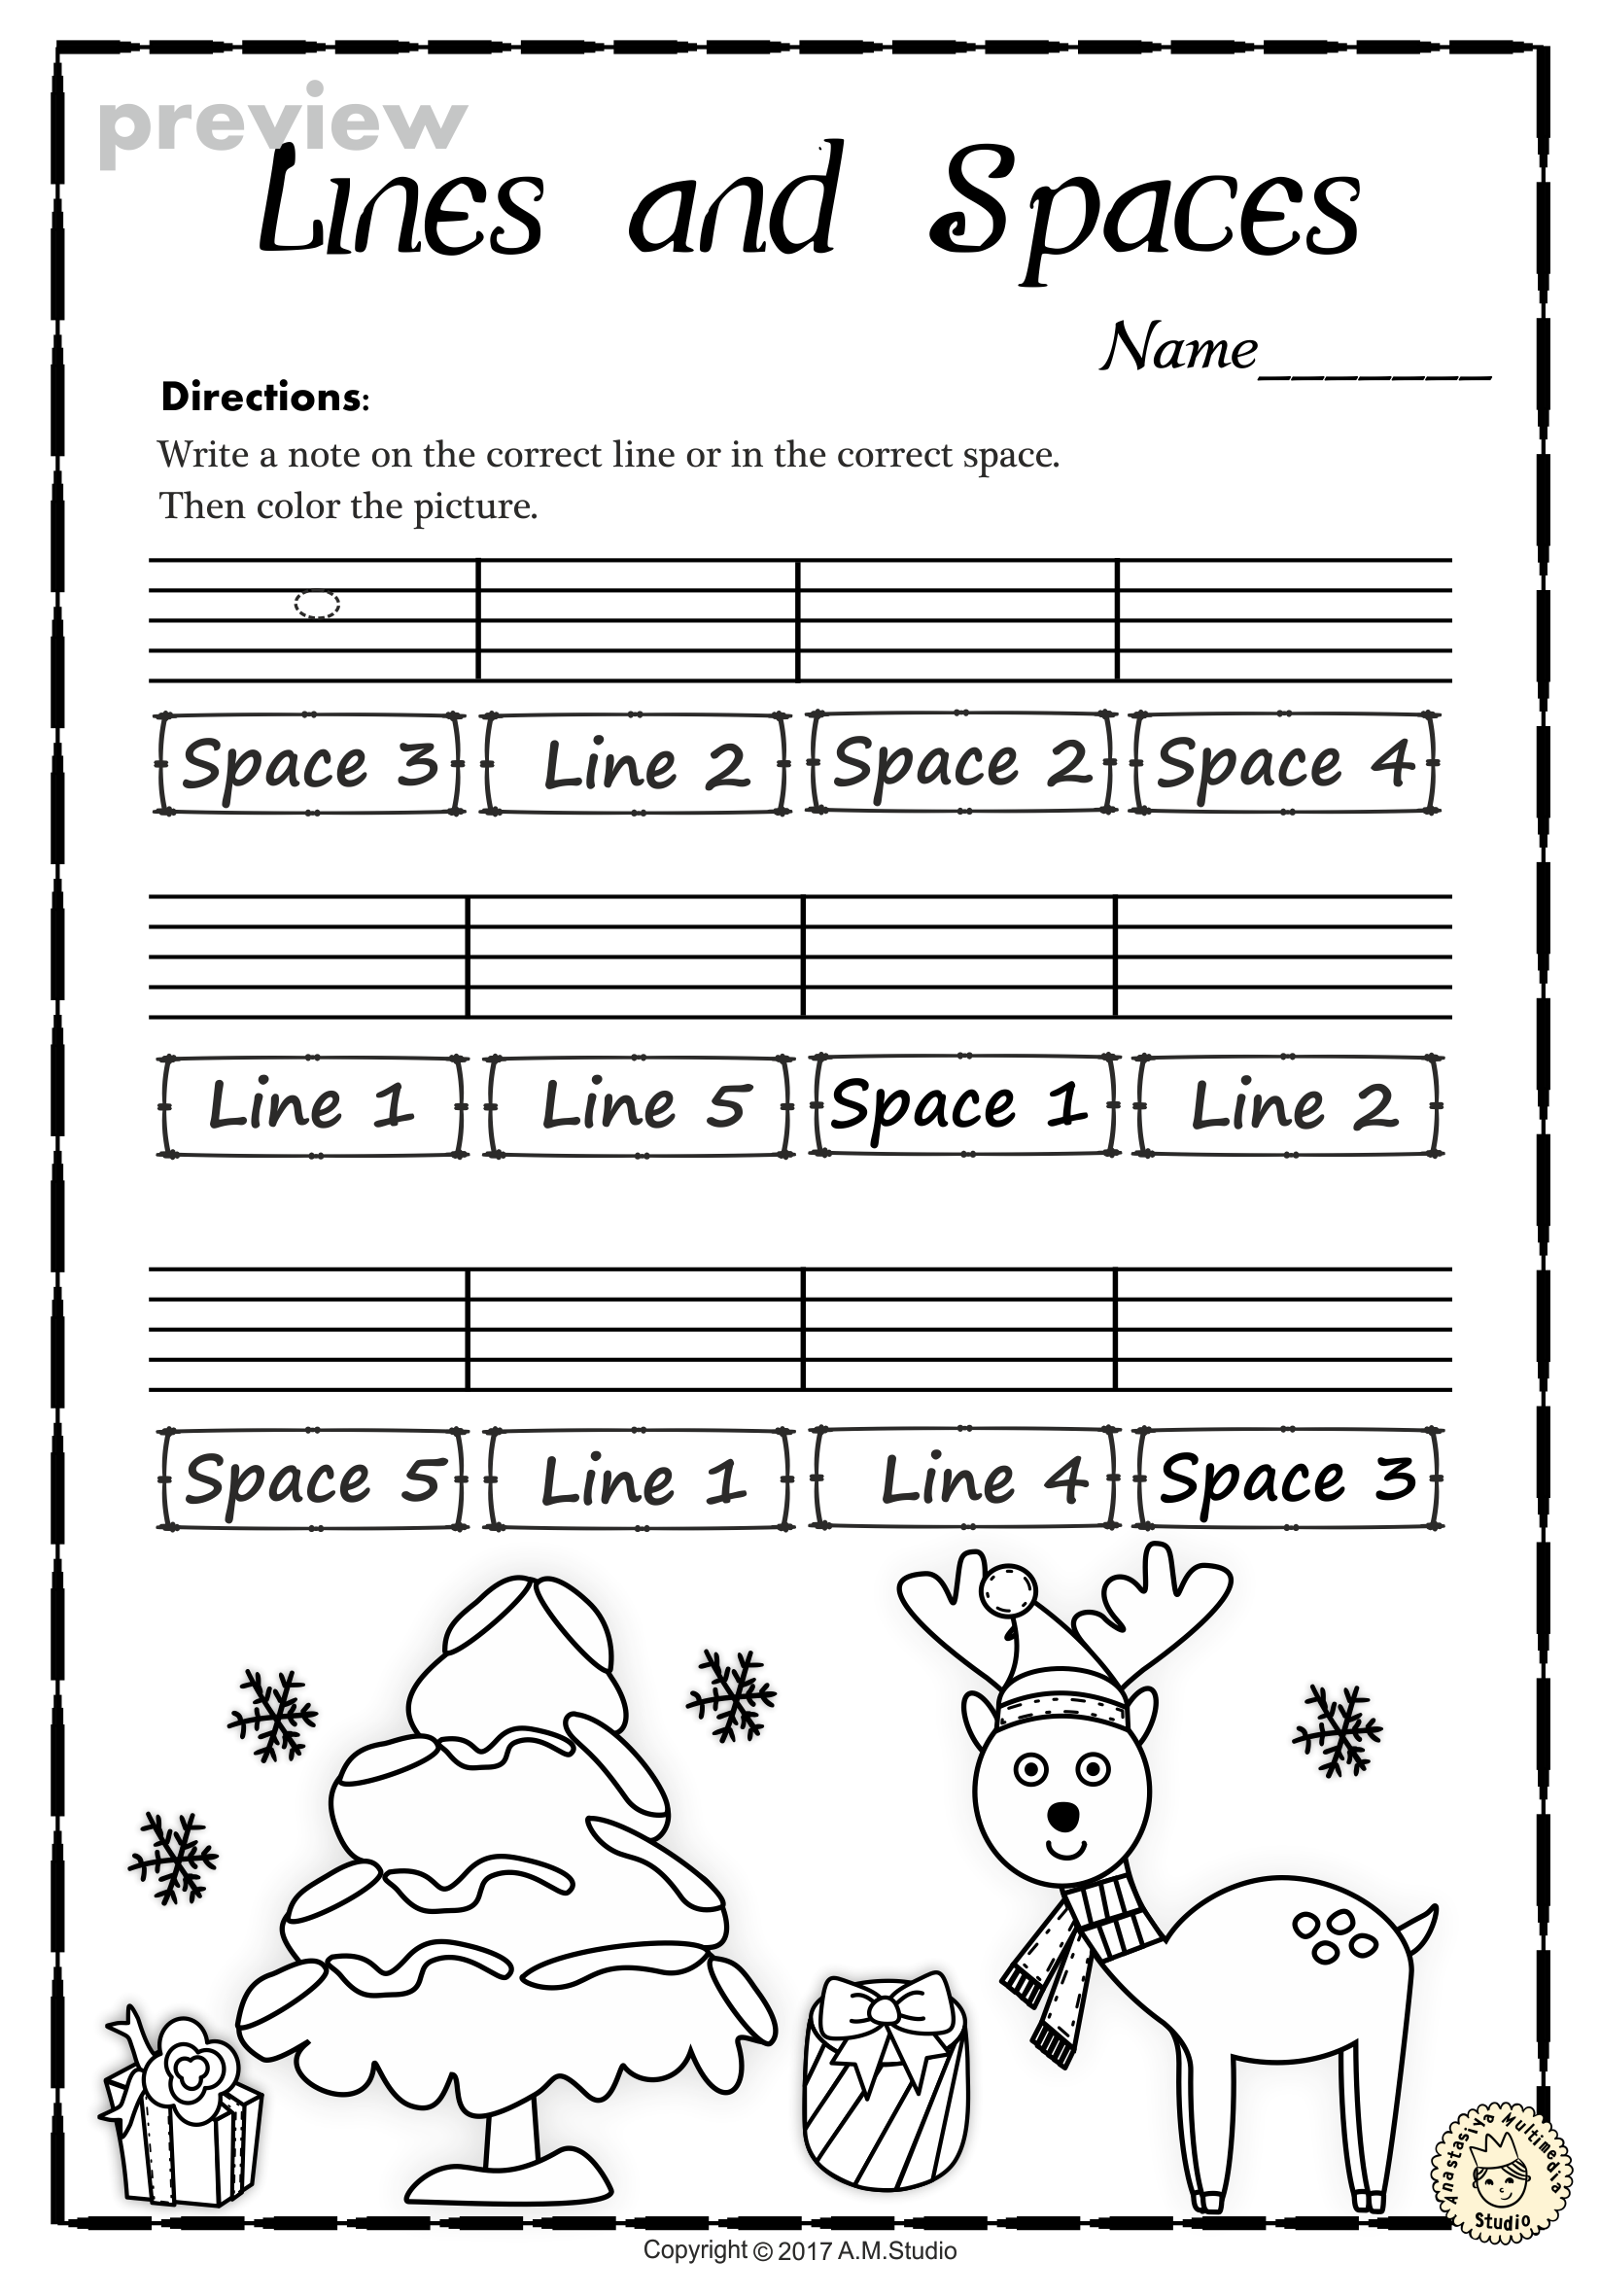 This Set Of 20 Music Worksheets Christmas Themed Is Designed To Help Your Students Practice Iden Music Worksheets Elementary Music Education Basic Music Theory [ 2362 x 1646 Pixel ]